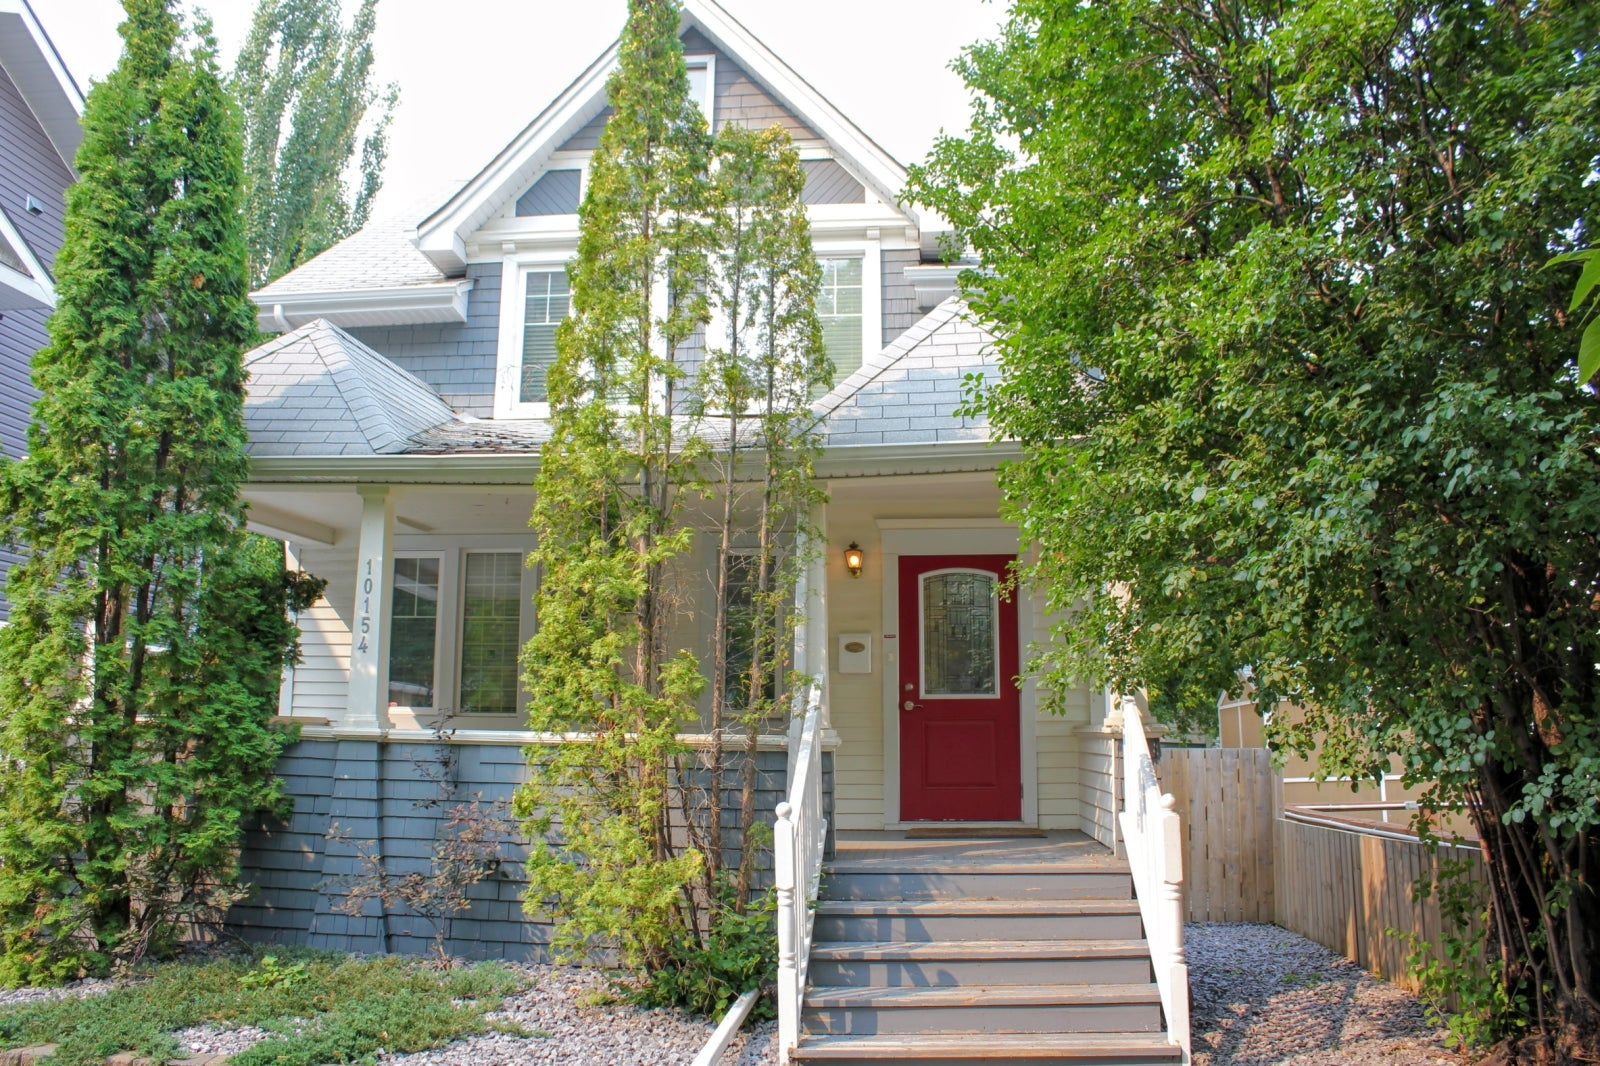 10154 121 ST NW - Oliver COMM for sale, 5 Bedrooms (E4126887) #28